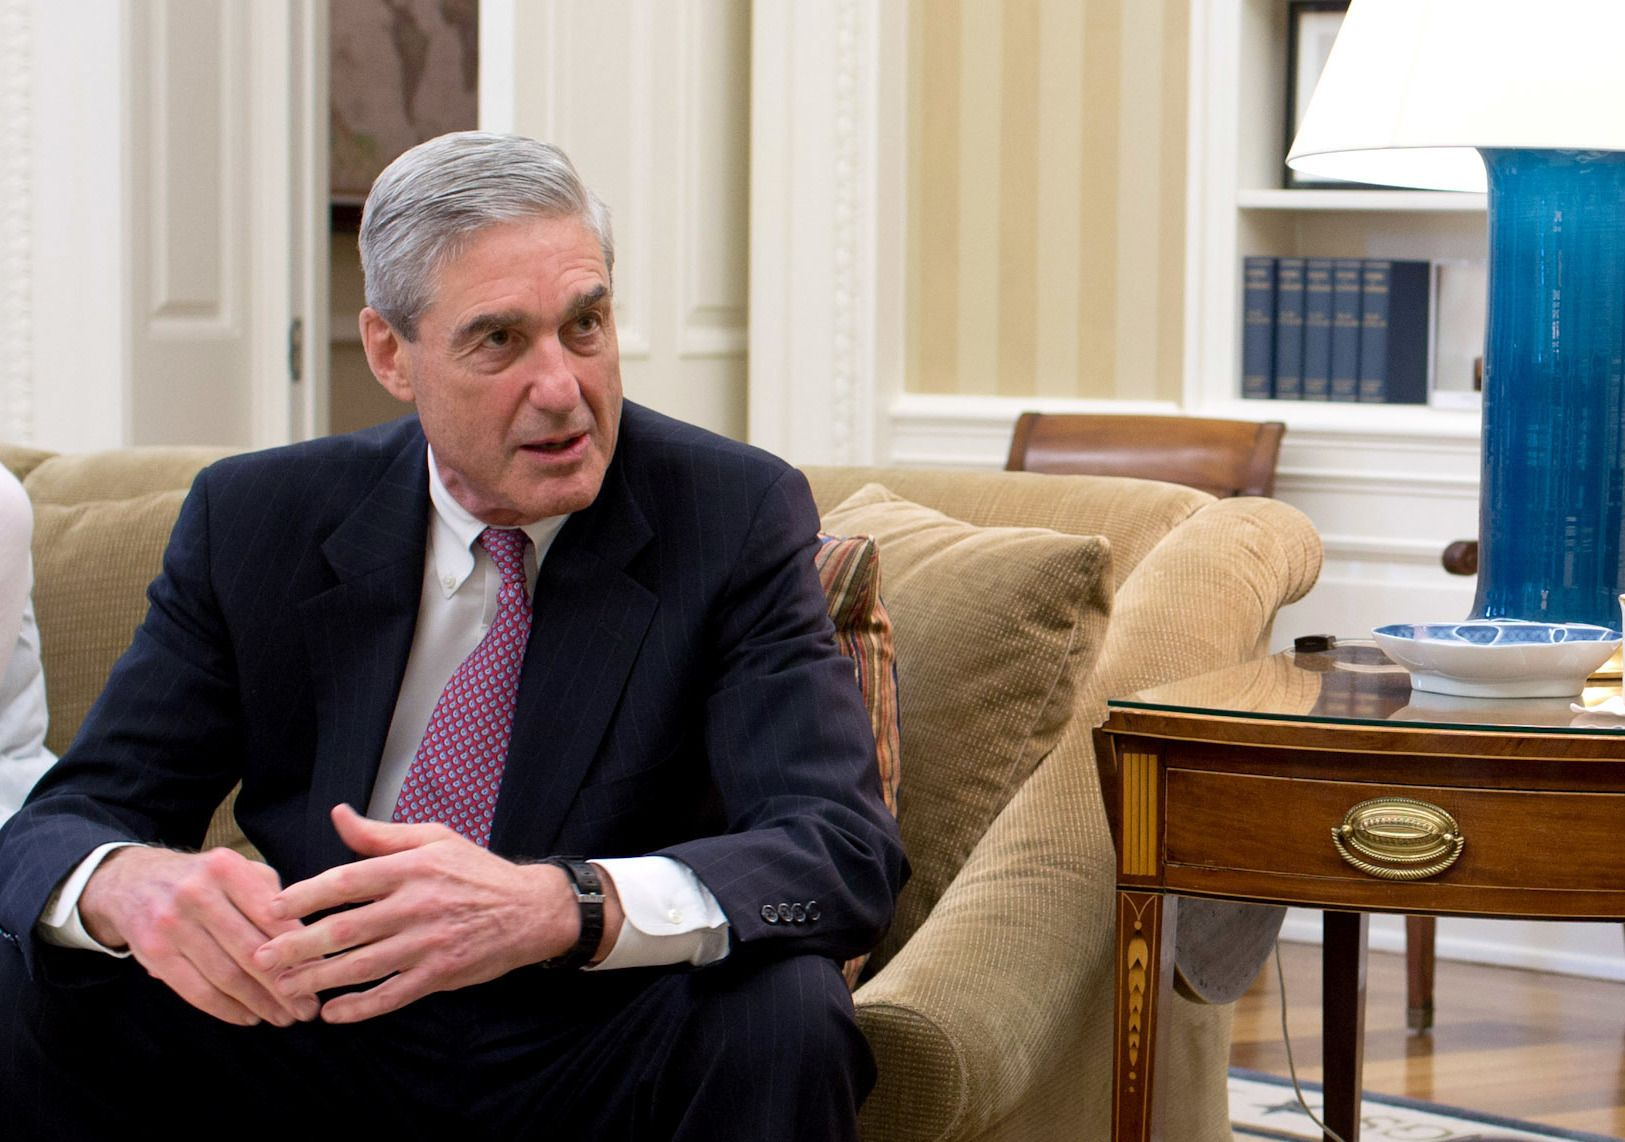 IRS shares information with Mueller's special counsel probe